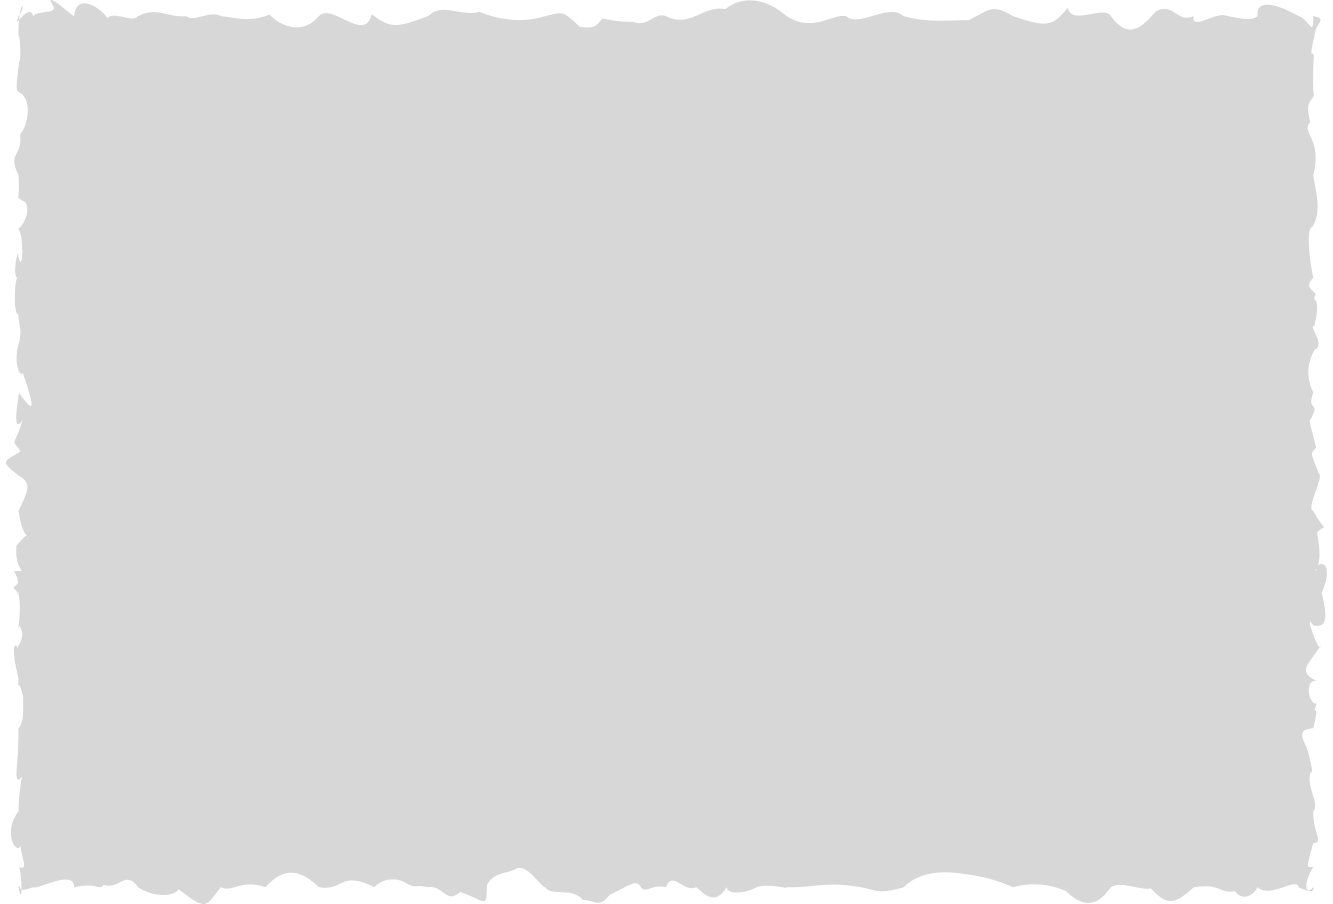 rectangle grey Clipart illustration in PNG, SVG